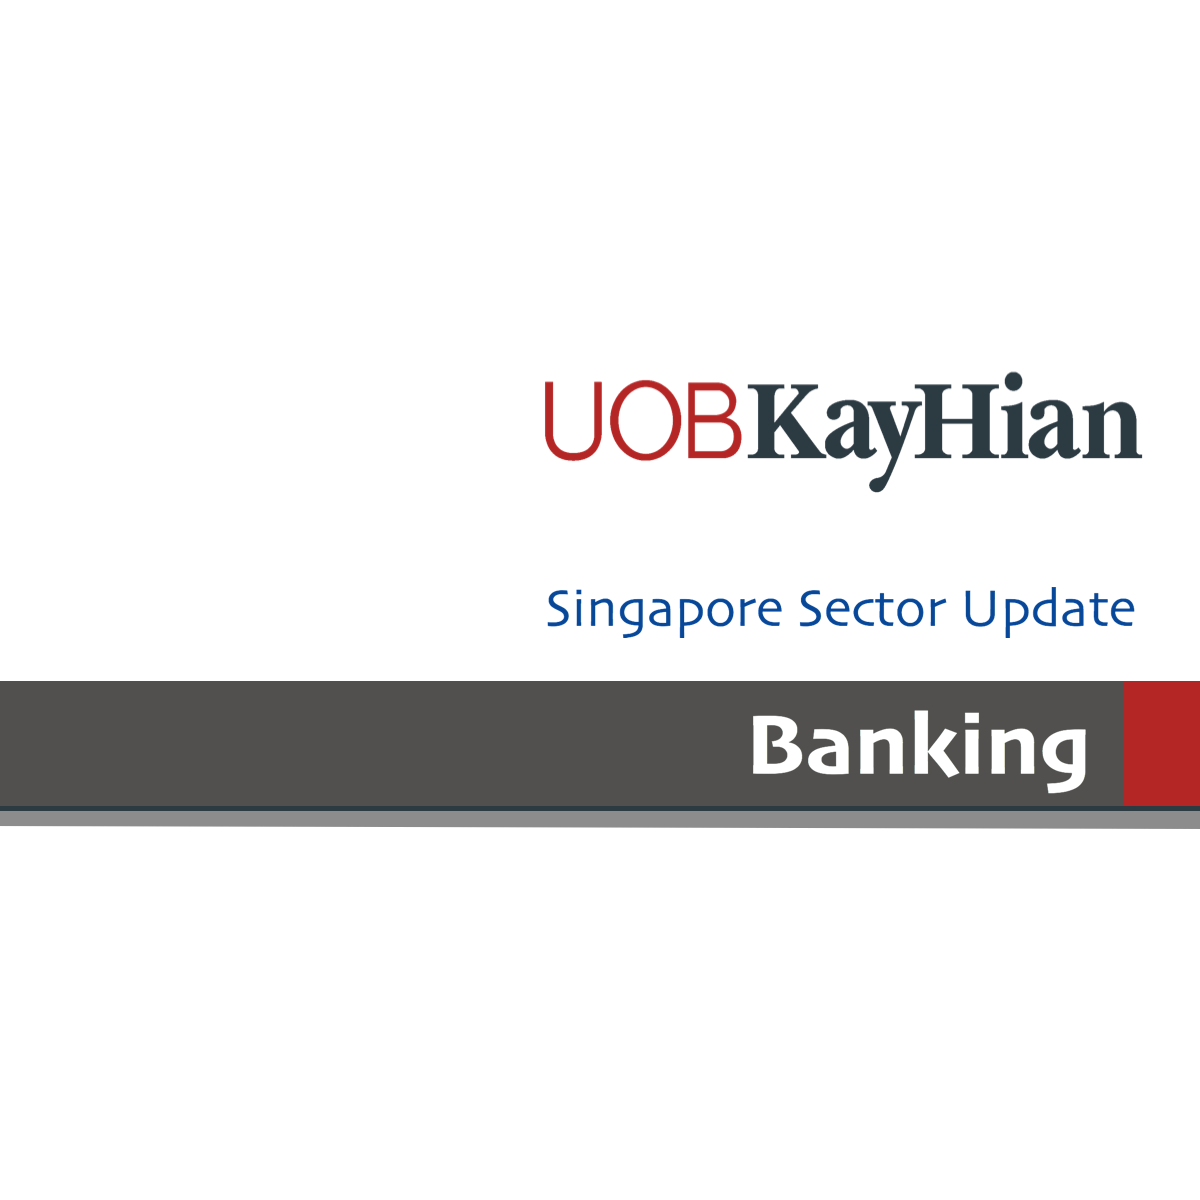 Banking – Singapore - UOB Kay Hian 2017-12-14: Assessing Productivity And Cost Efficiency